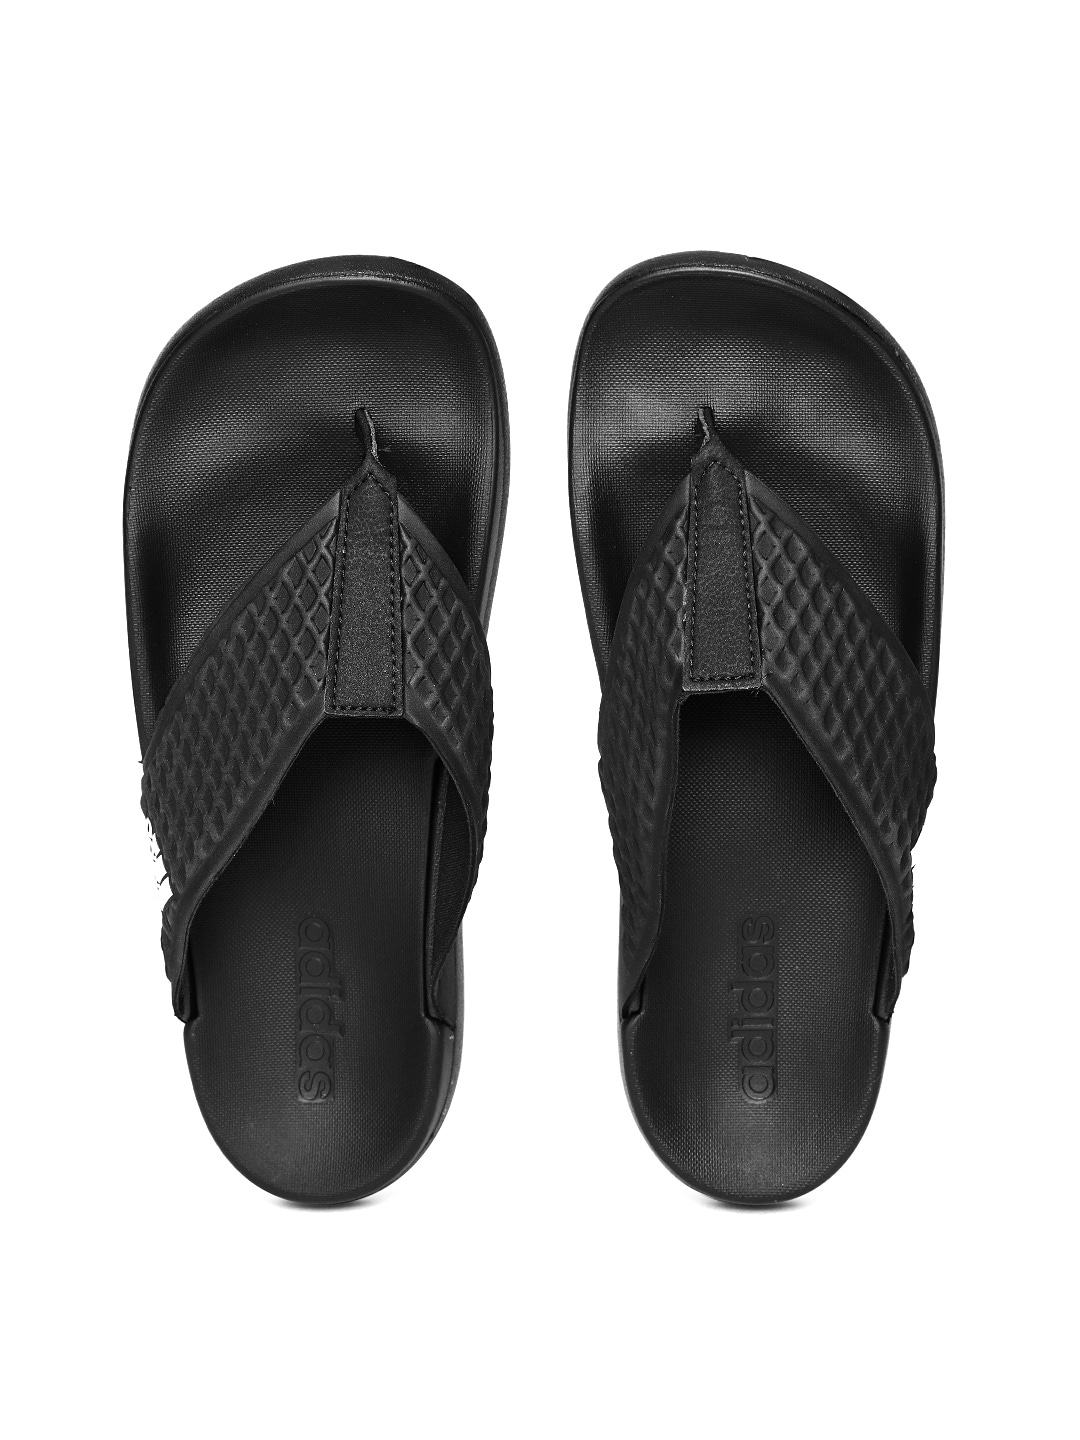 8c76d764ec413 Adidas Slippers - Buy Adidas Slipper   Flip Flops Online India